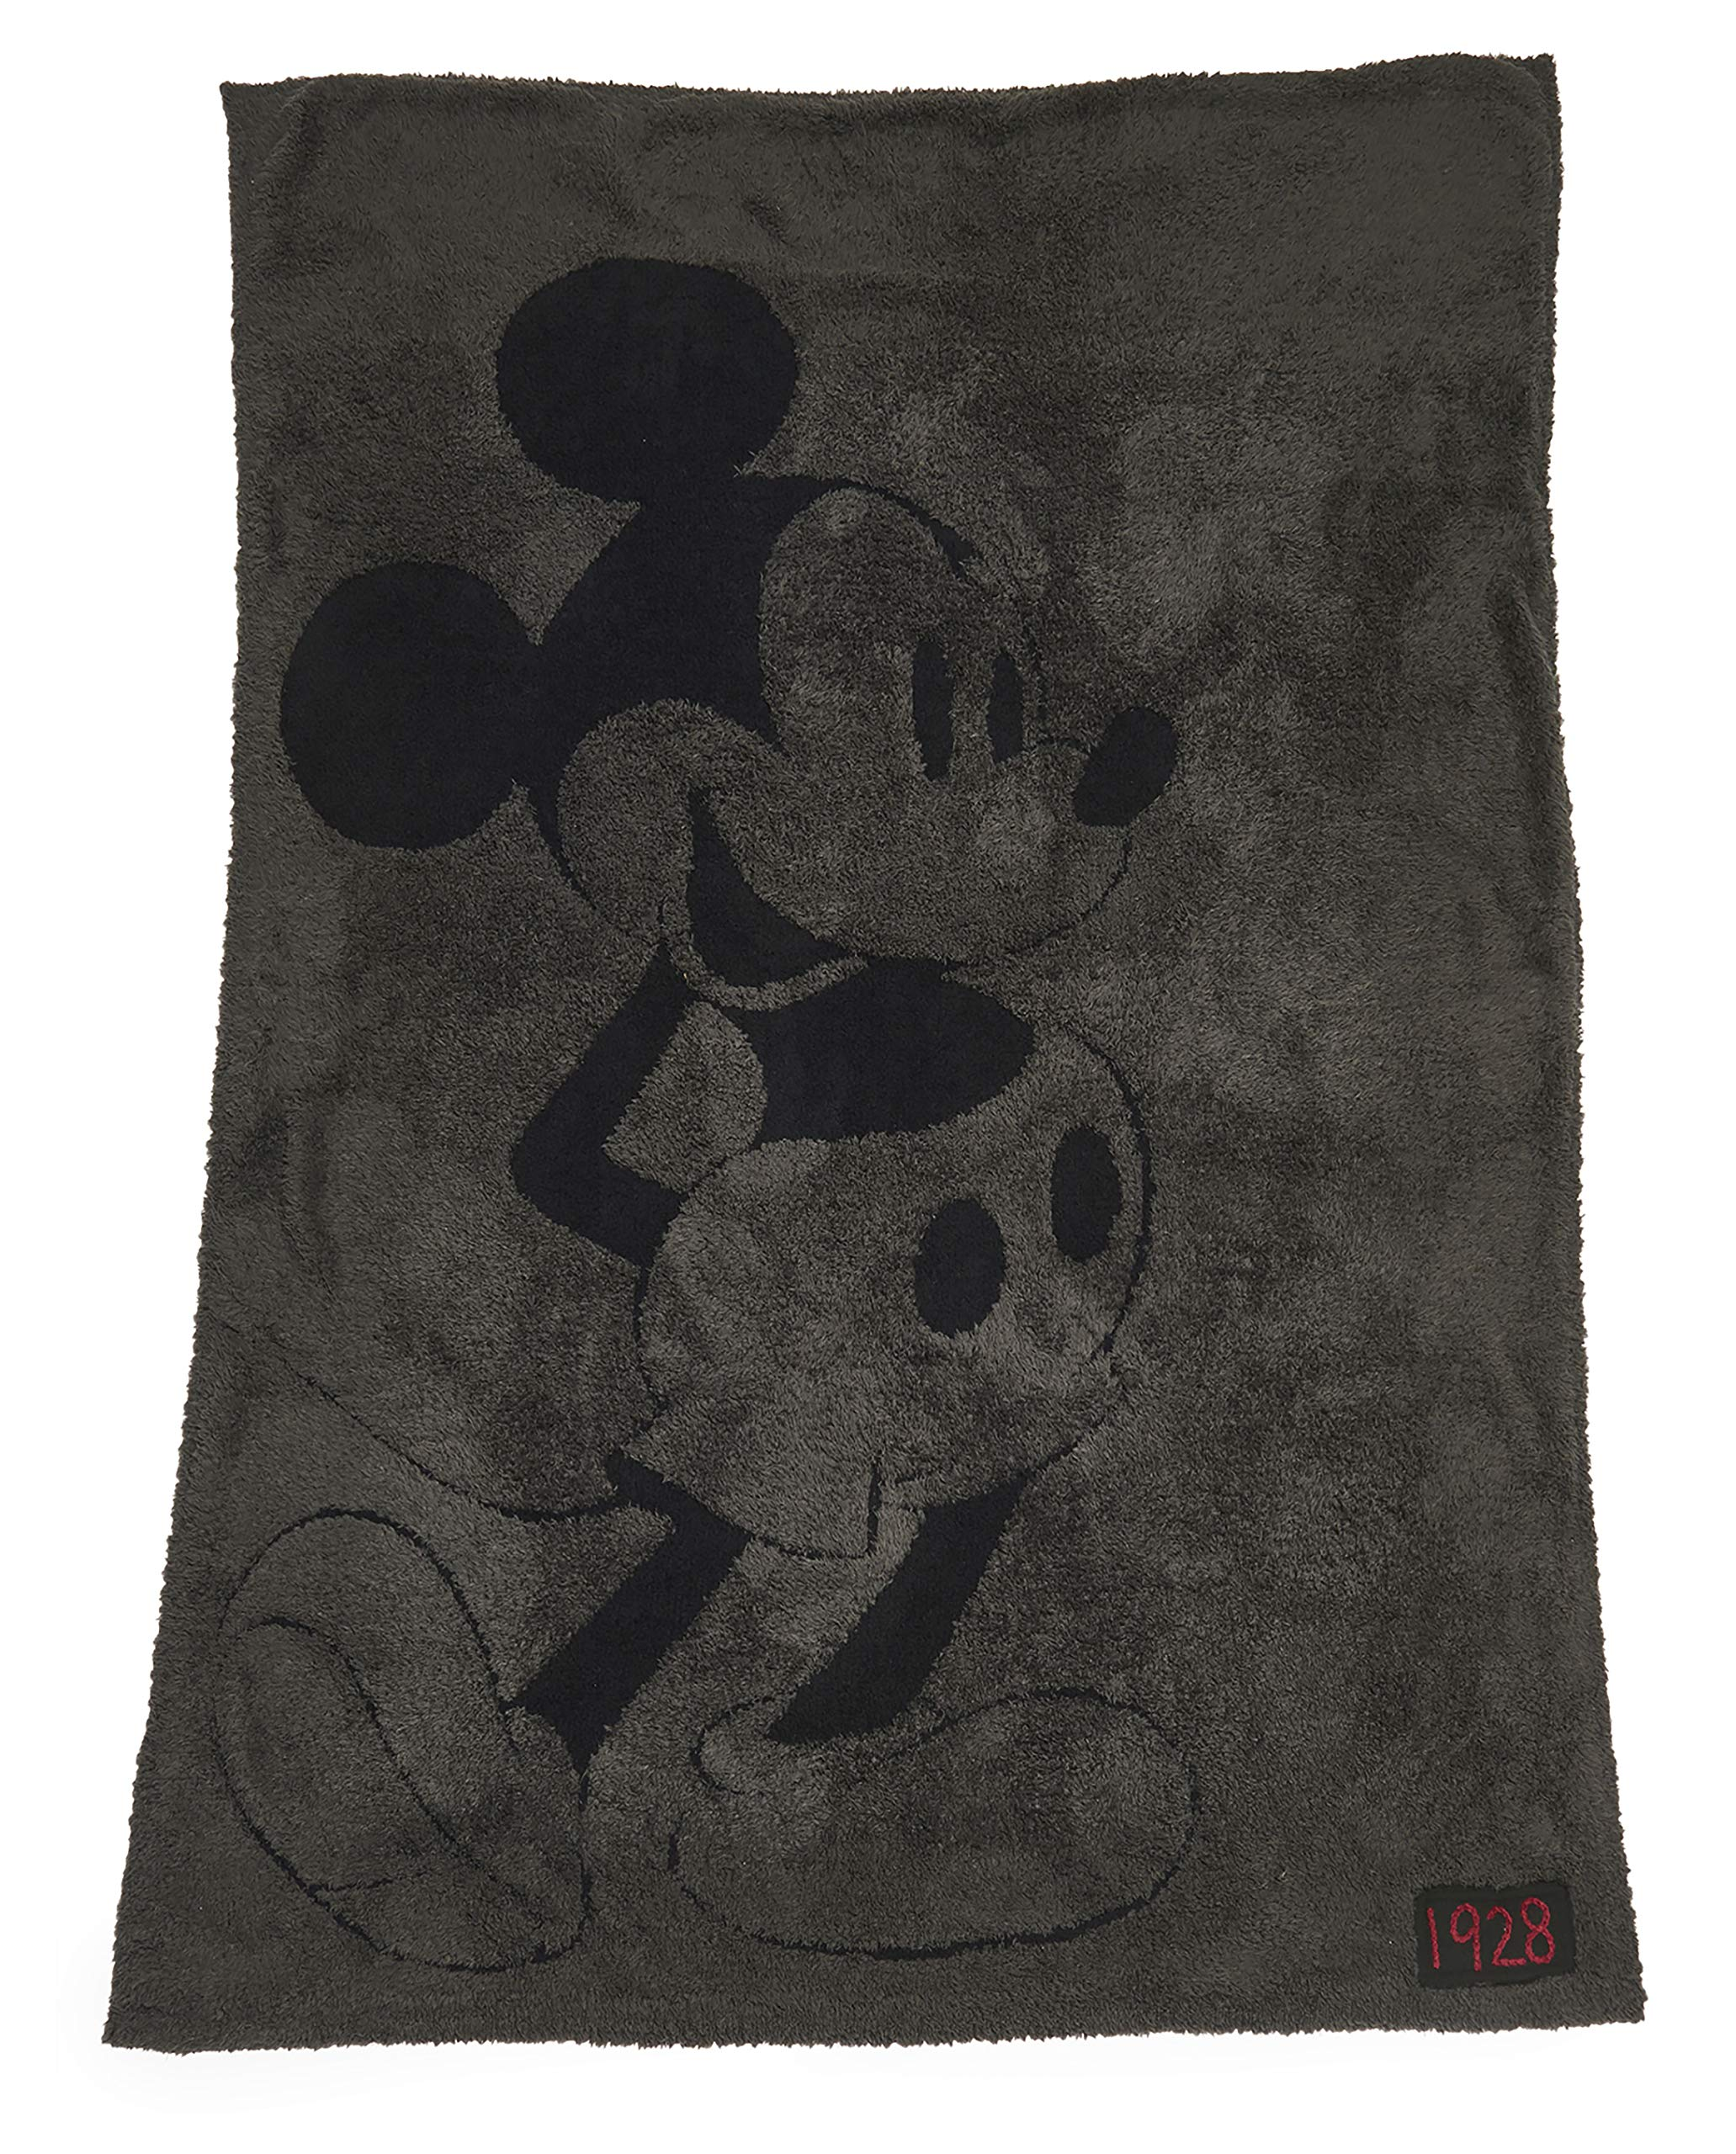 Barefoot Dreams CozyChic Classic Mickey Mouse Blanket Disney Series, Soft Throw-Carbon/Black by Barefoot Dreams